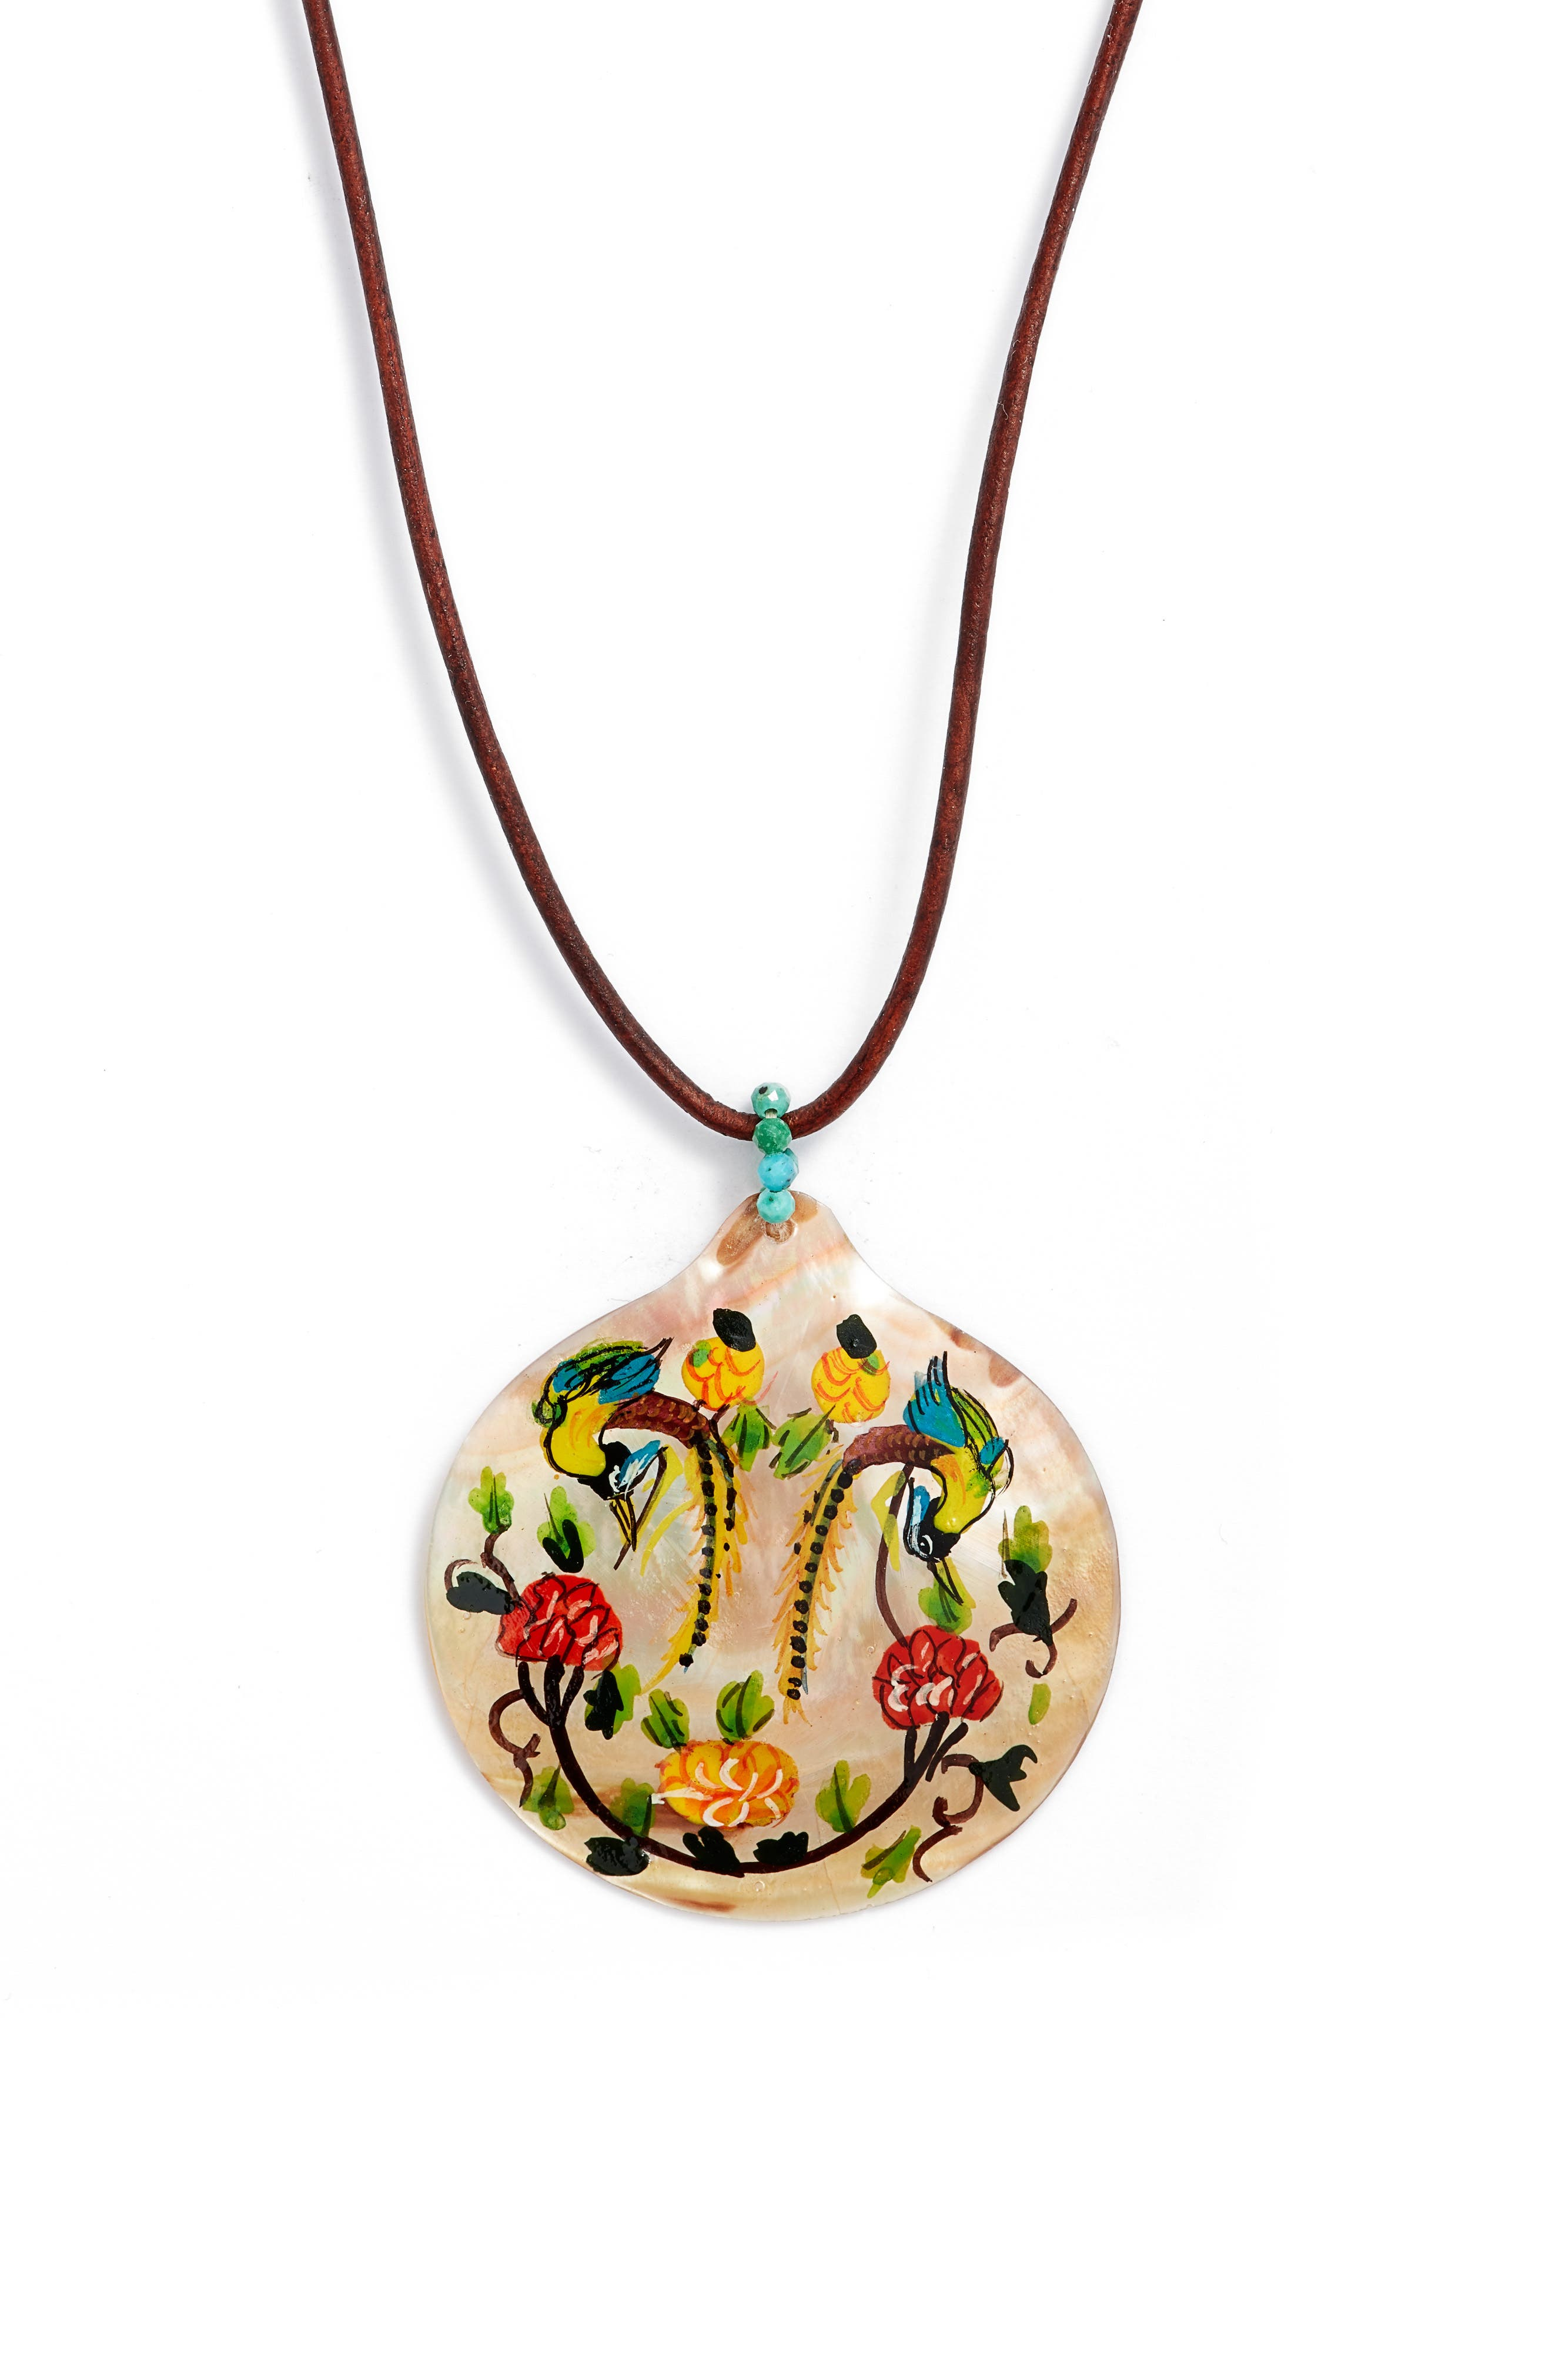 Painted Mother-Of-Pearl Pendant Necklace